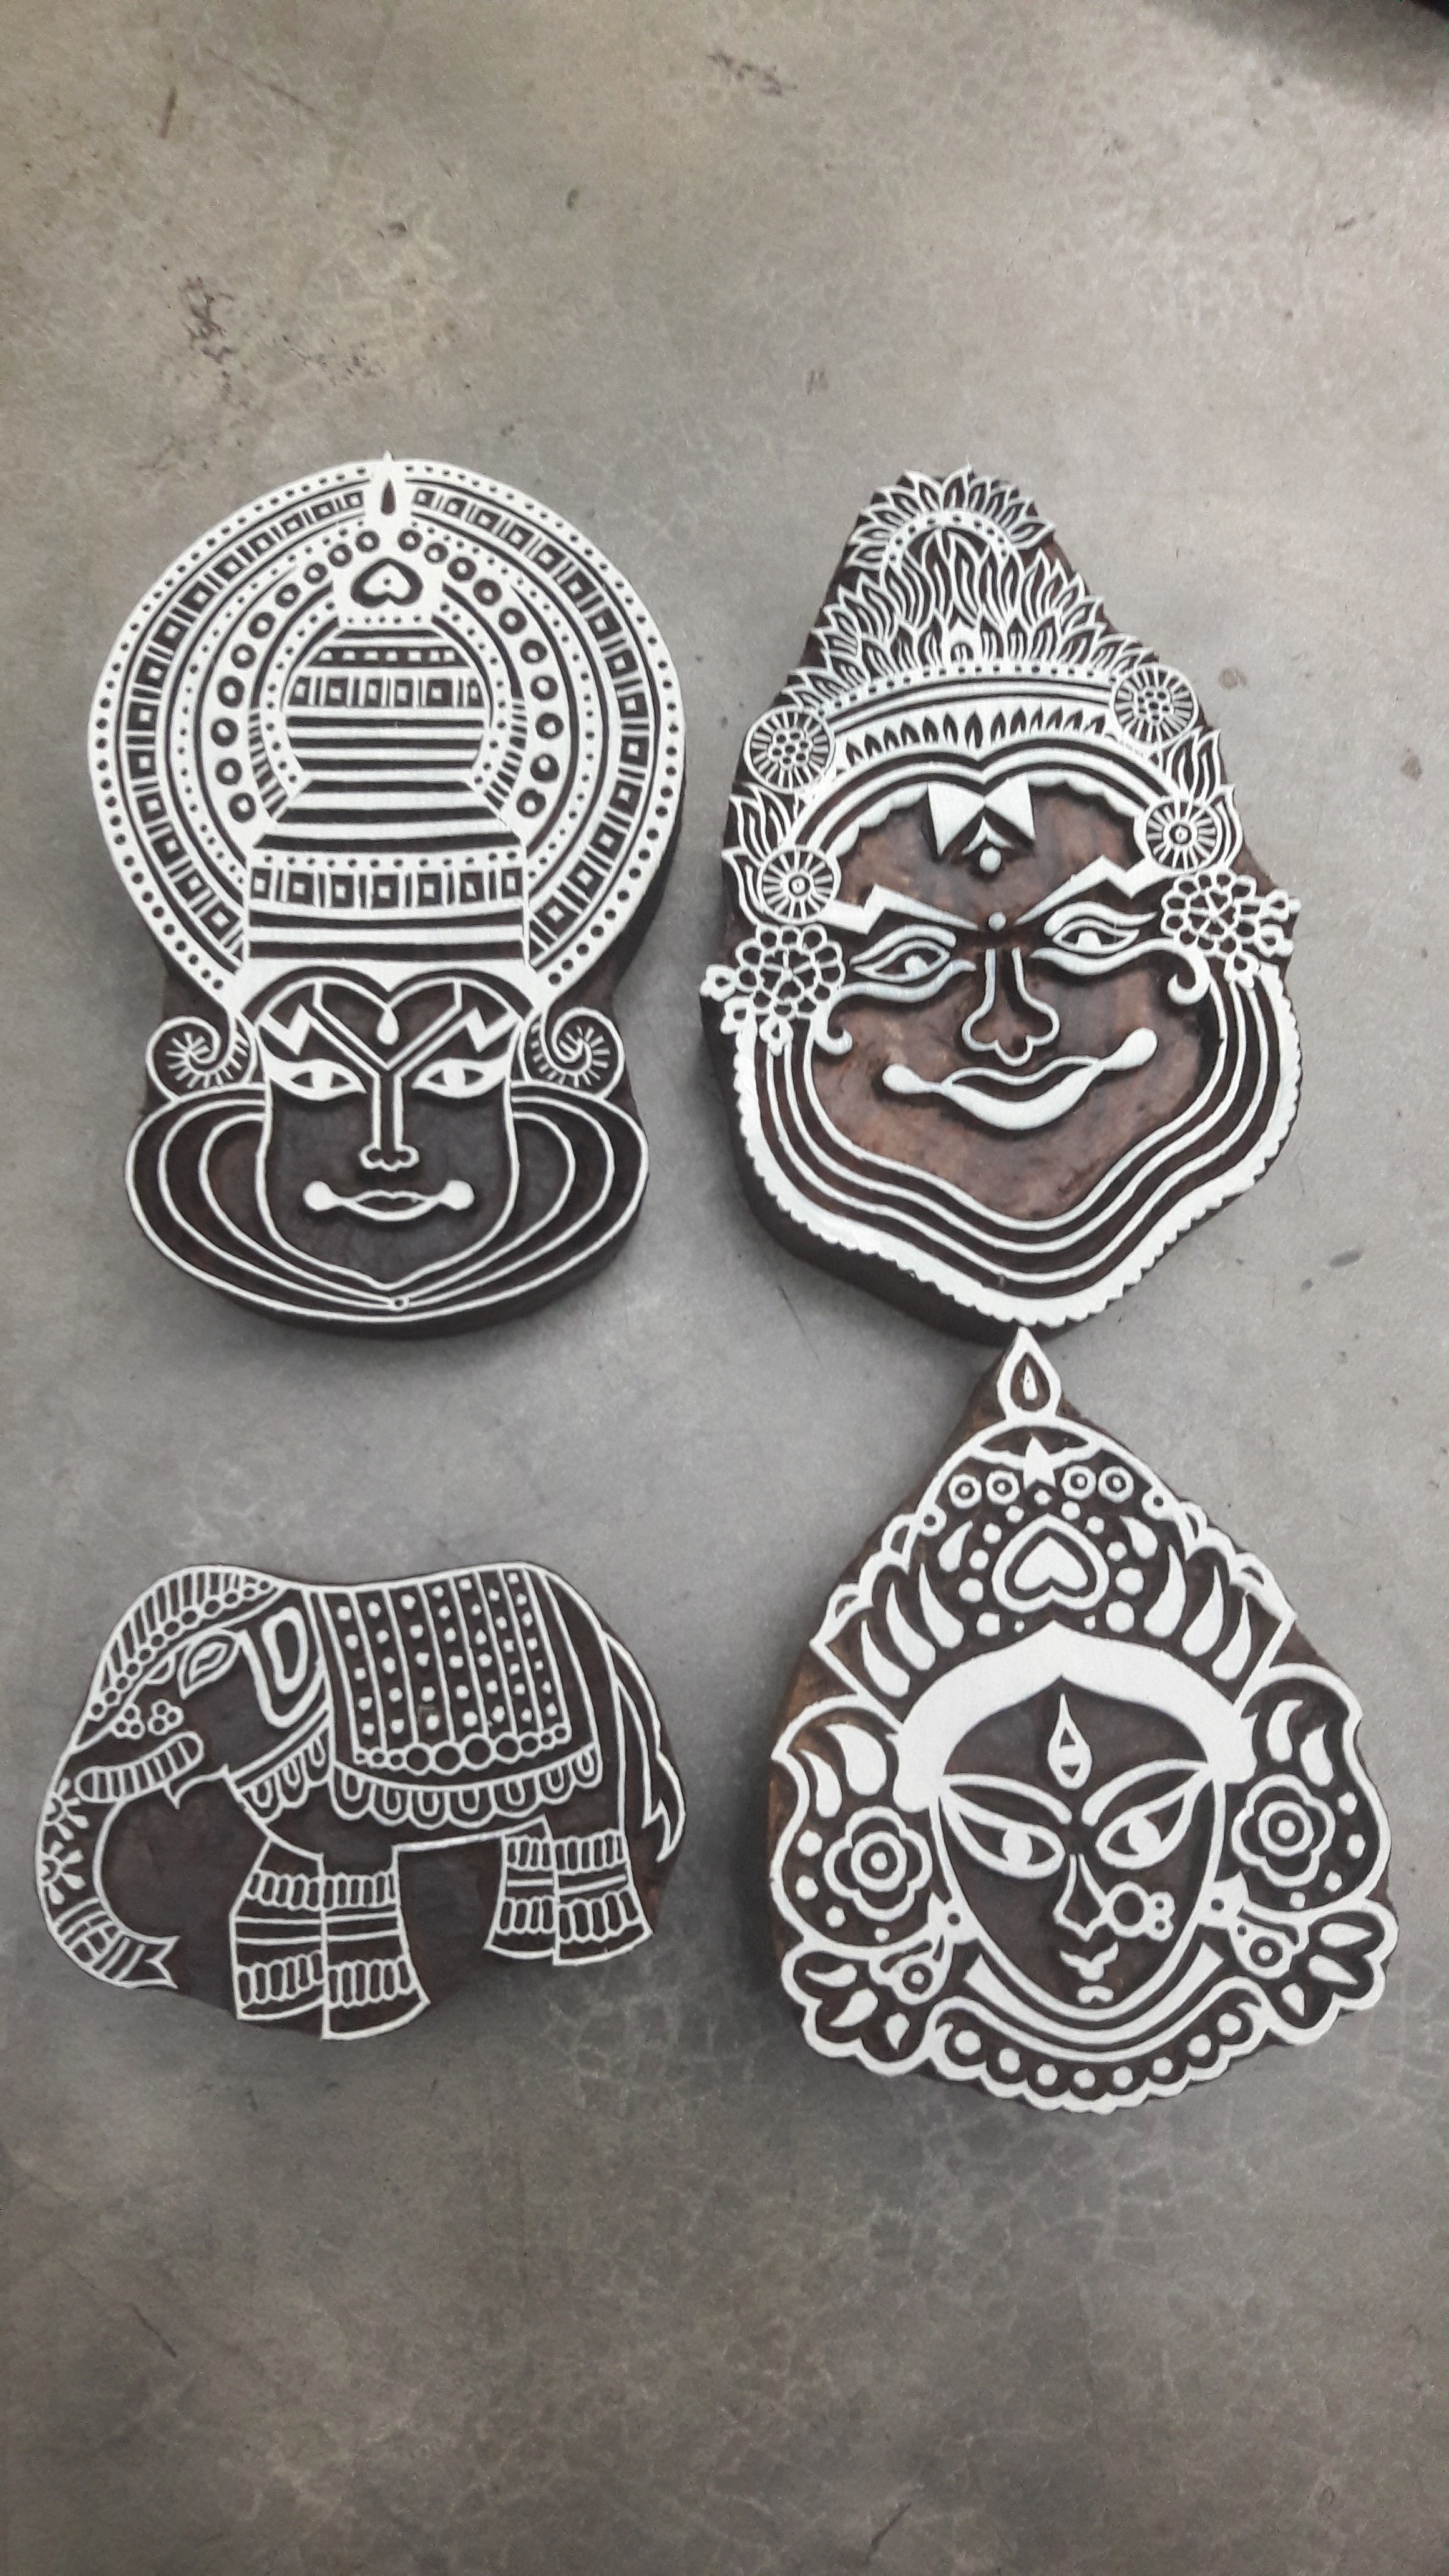 830d97f4f6a0 kathakali wooden printing blocks with elephant design 4 pcs pack for fabric  printing